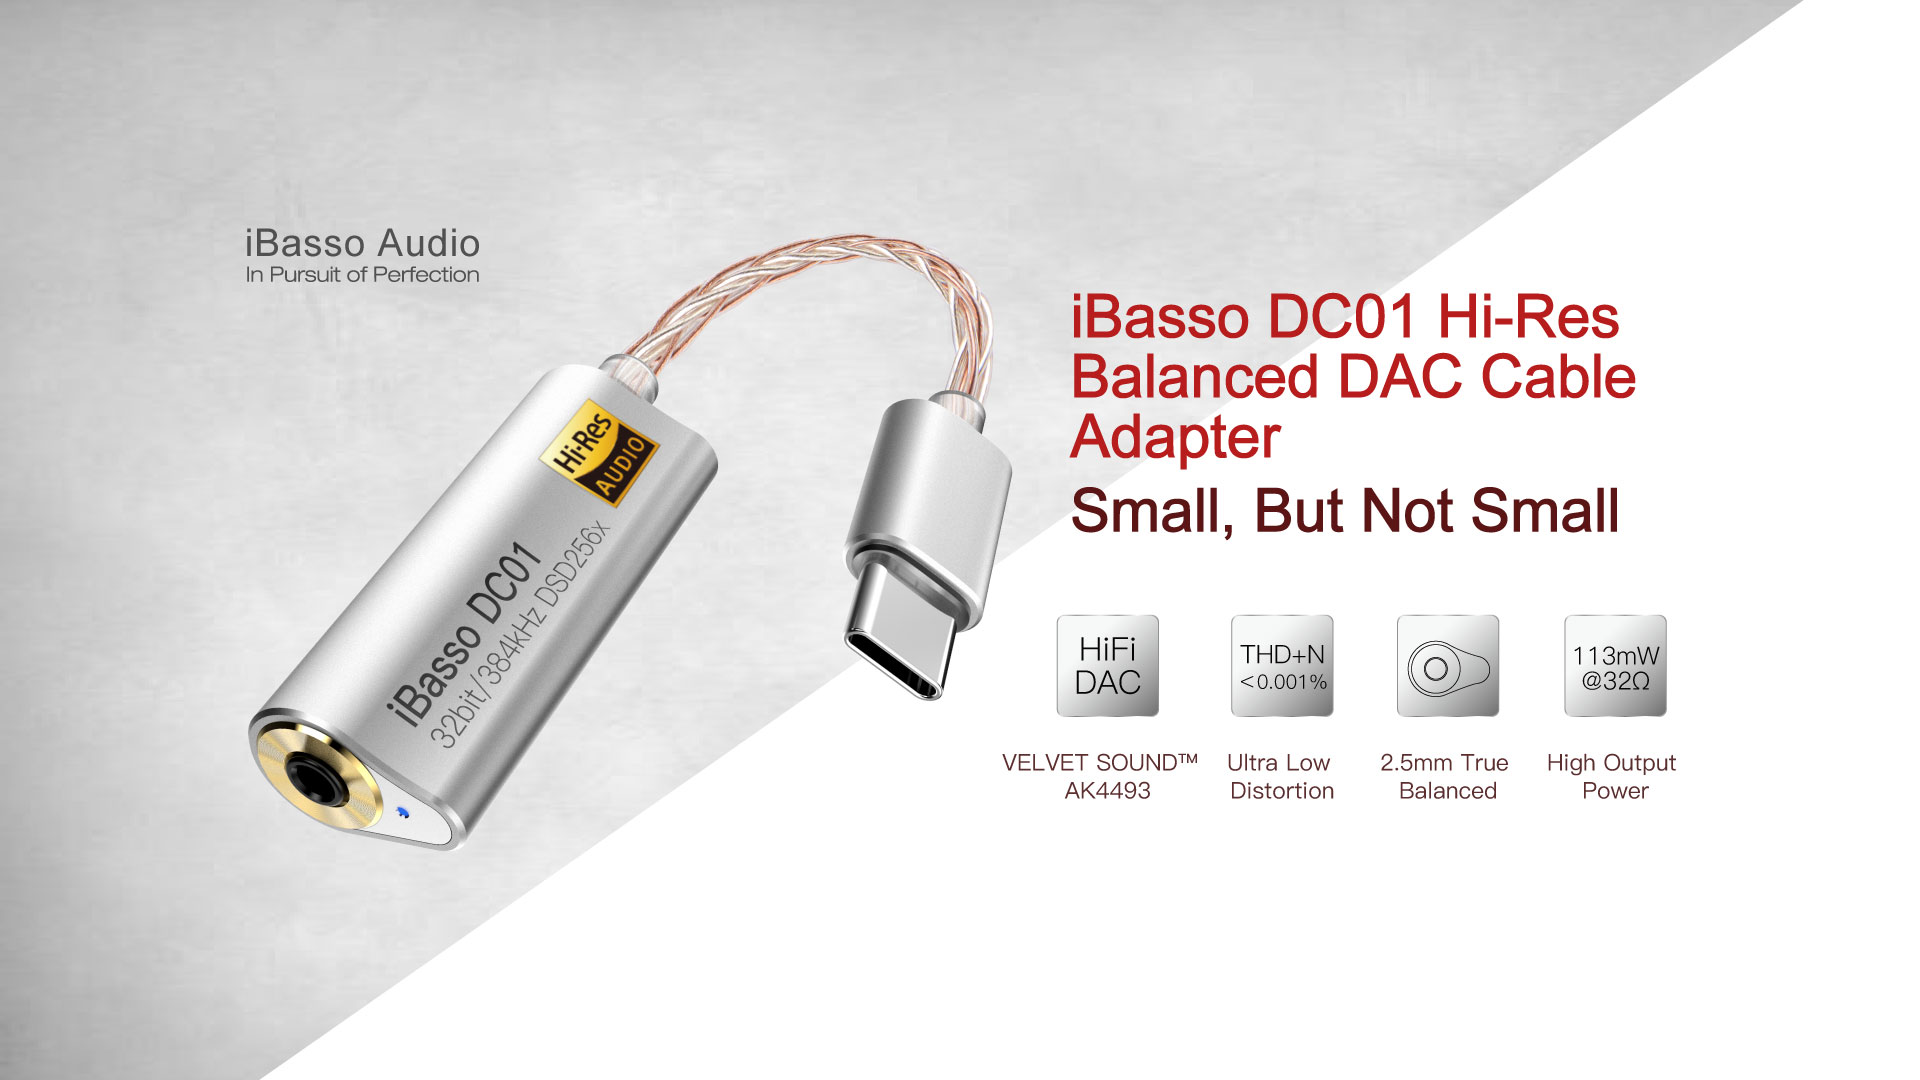 iBasso DC01 features and specifications part 1